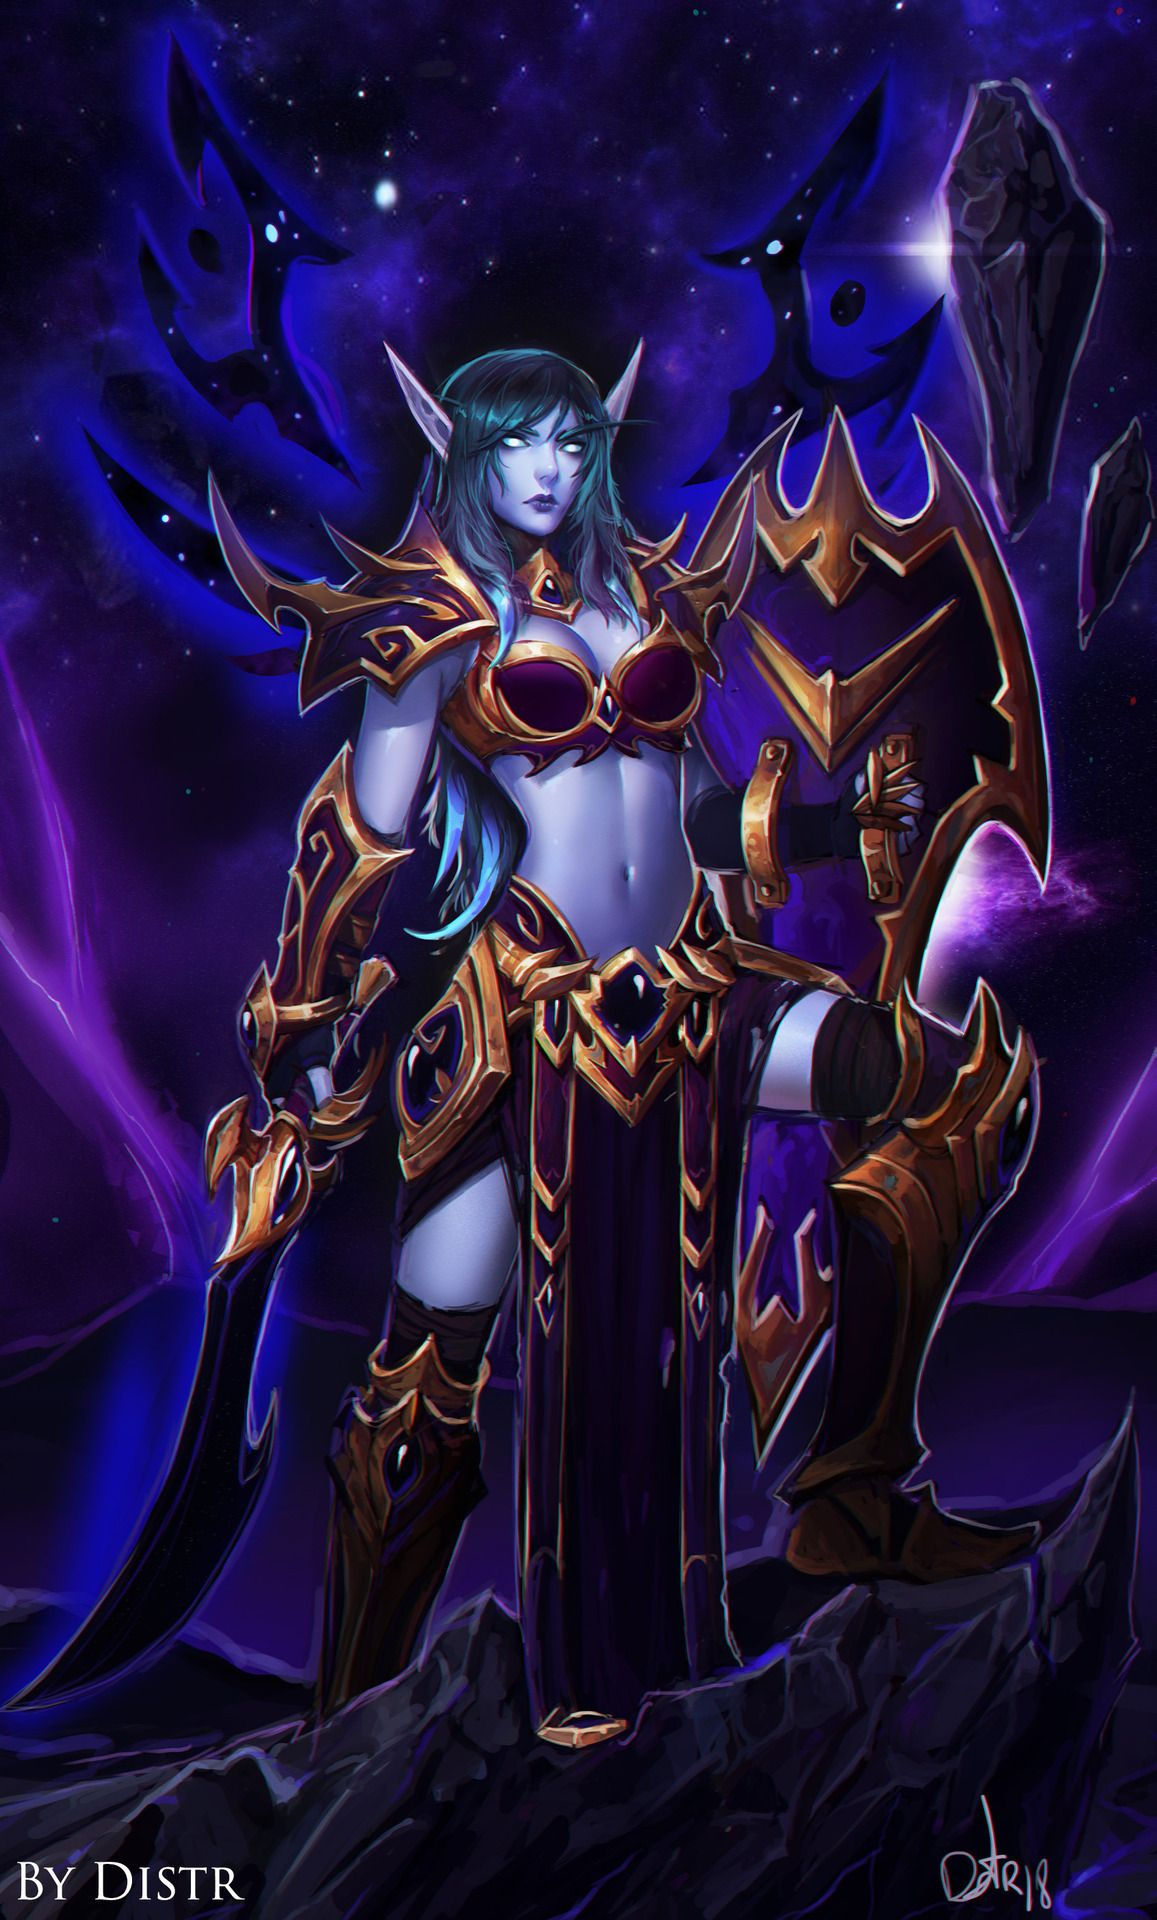 World Of Warcraft Void Elf The beginning of the blood elf heritage armor questline with my belf mage who just made it to 120. onc eisai jp